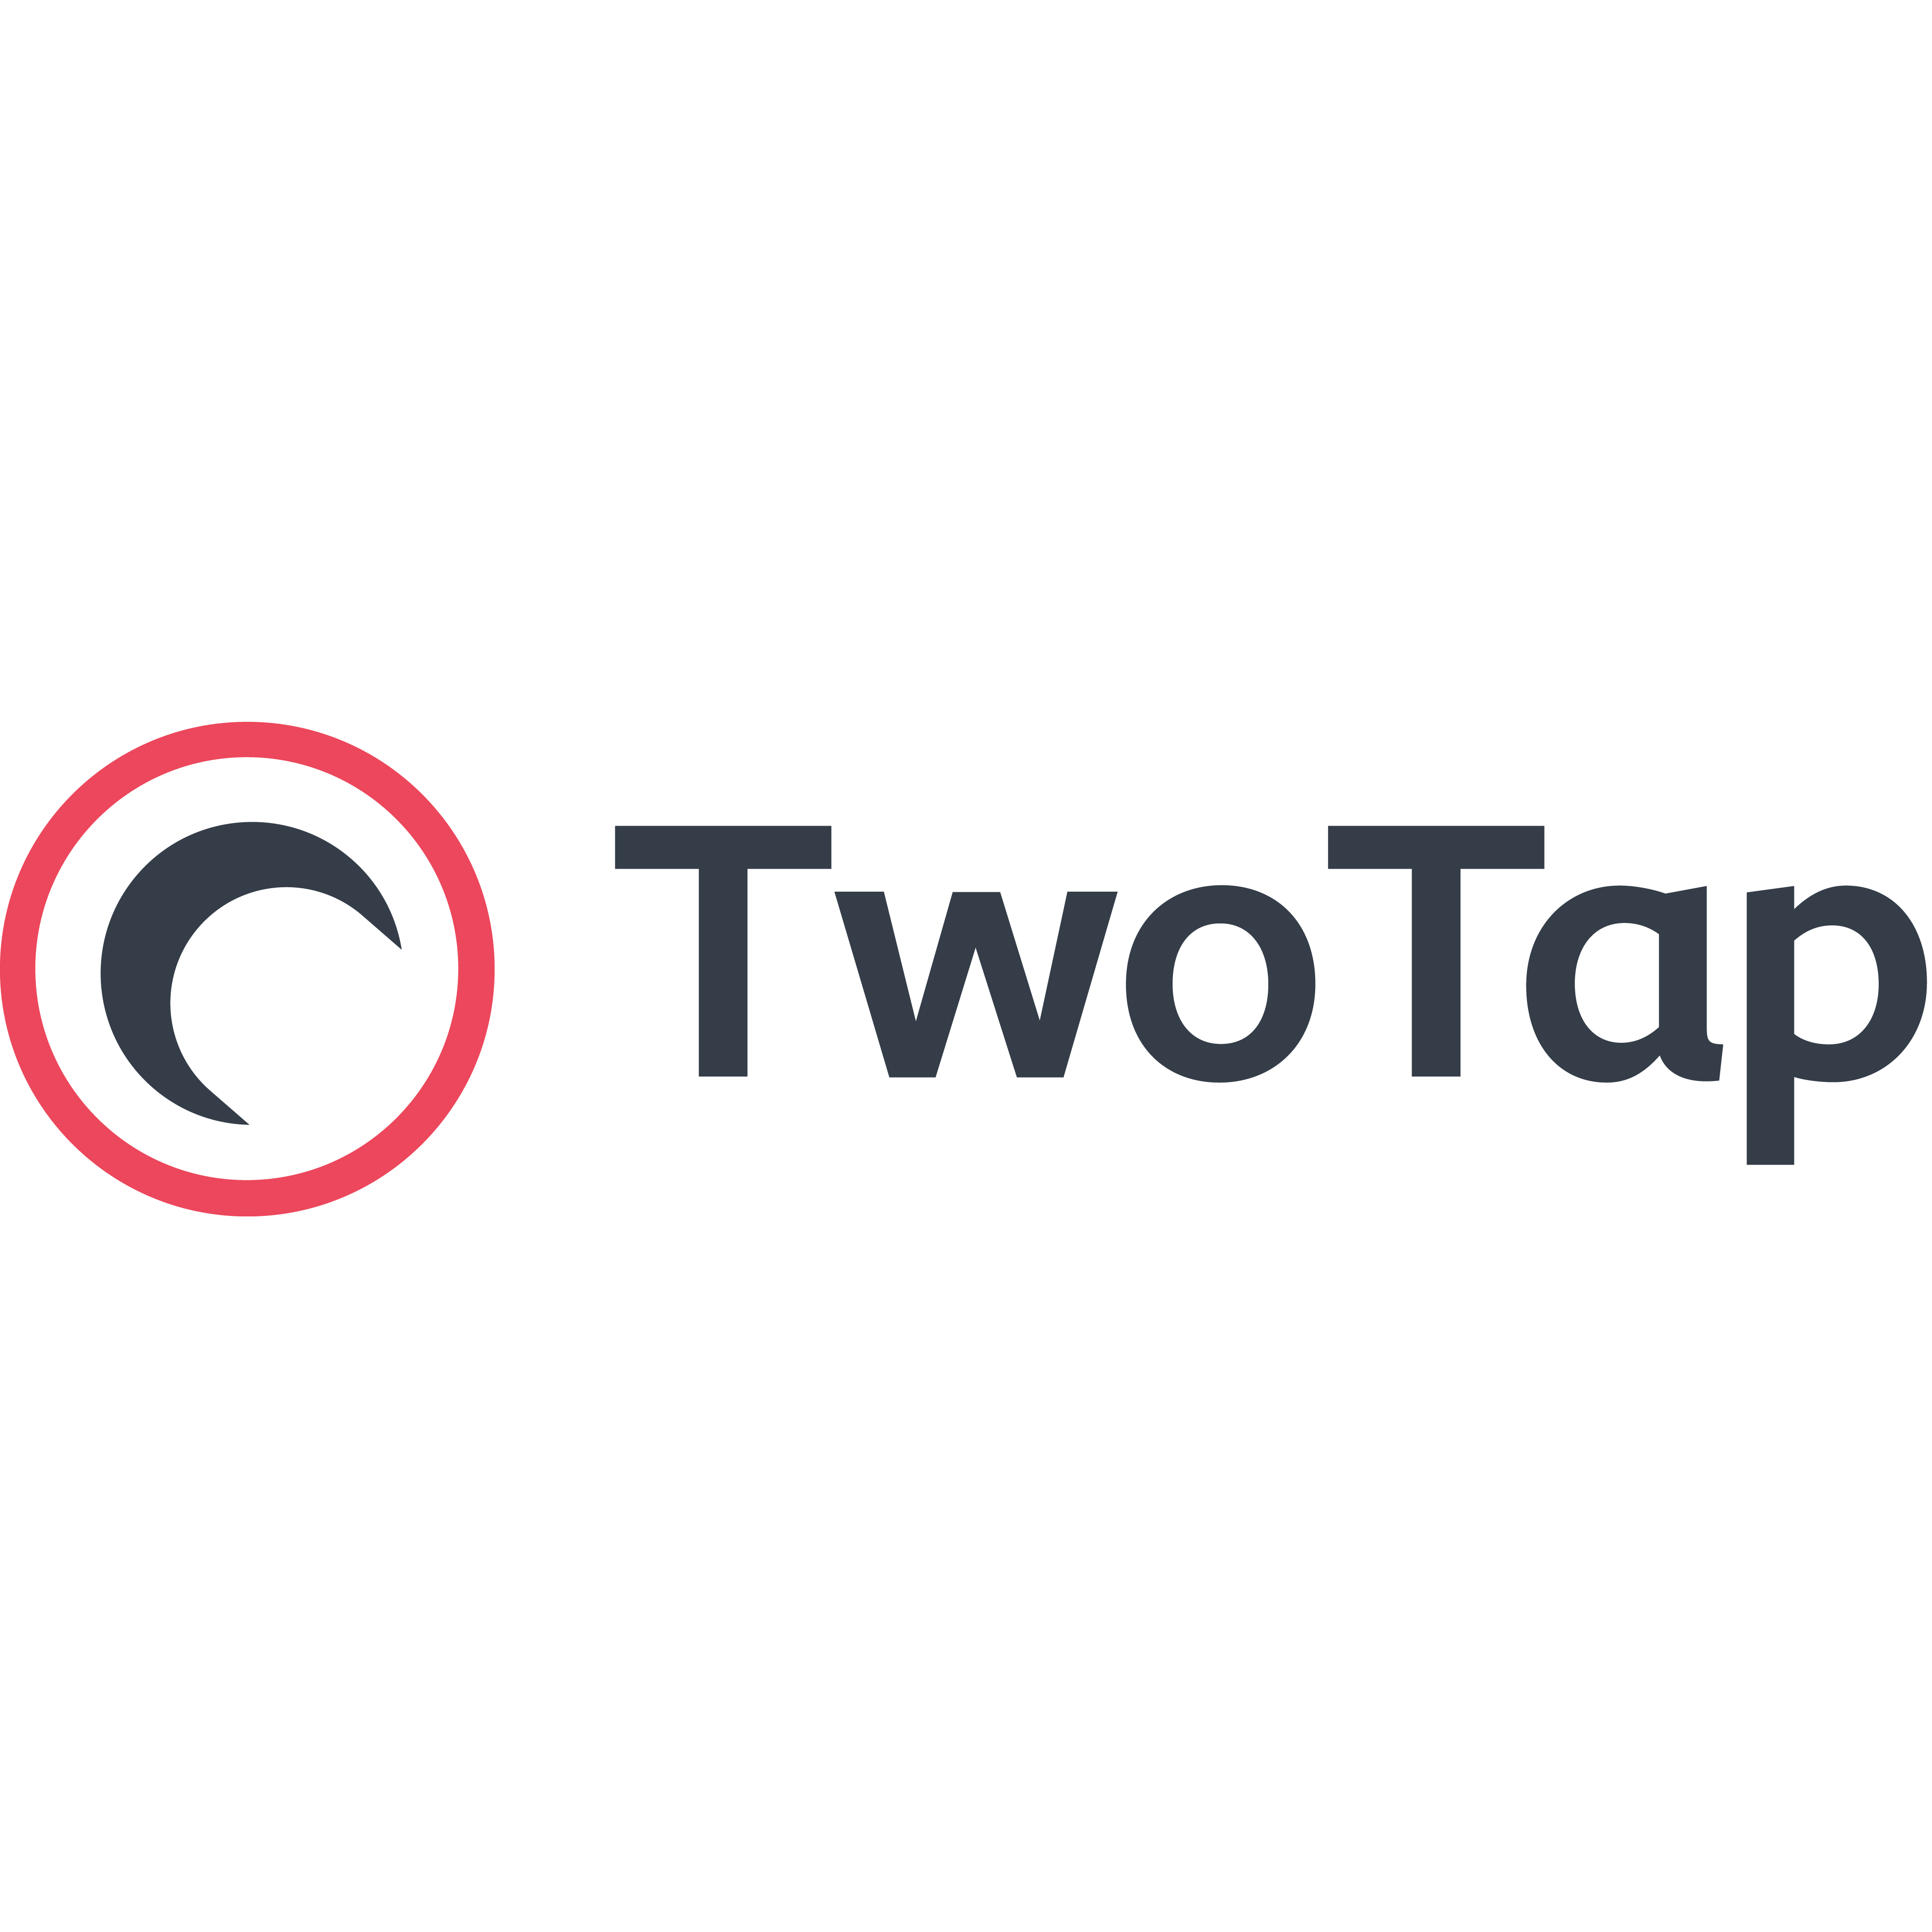 Two Tap